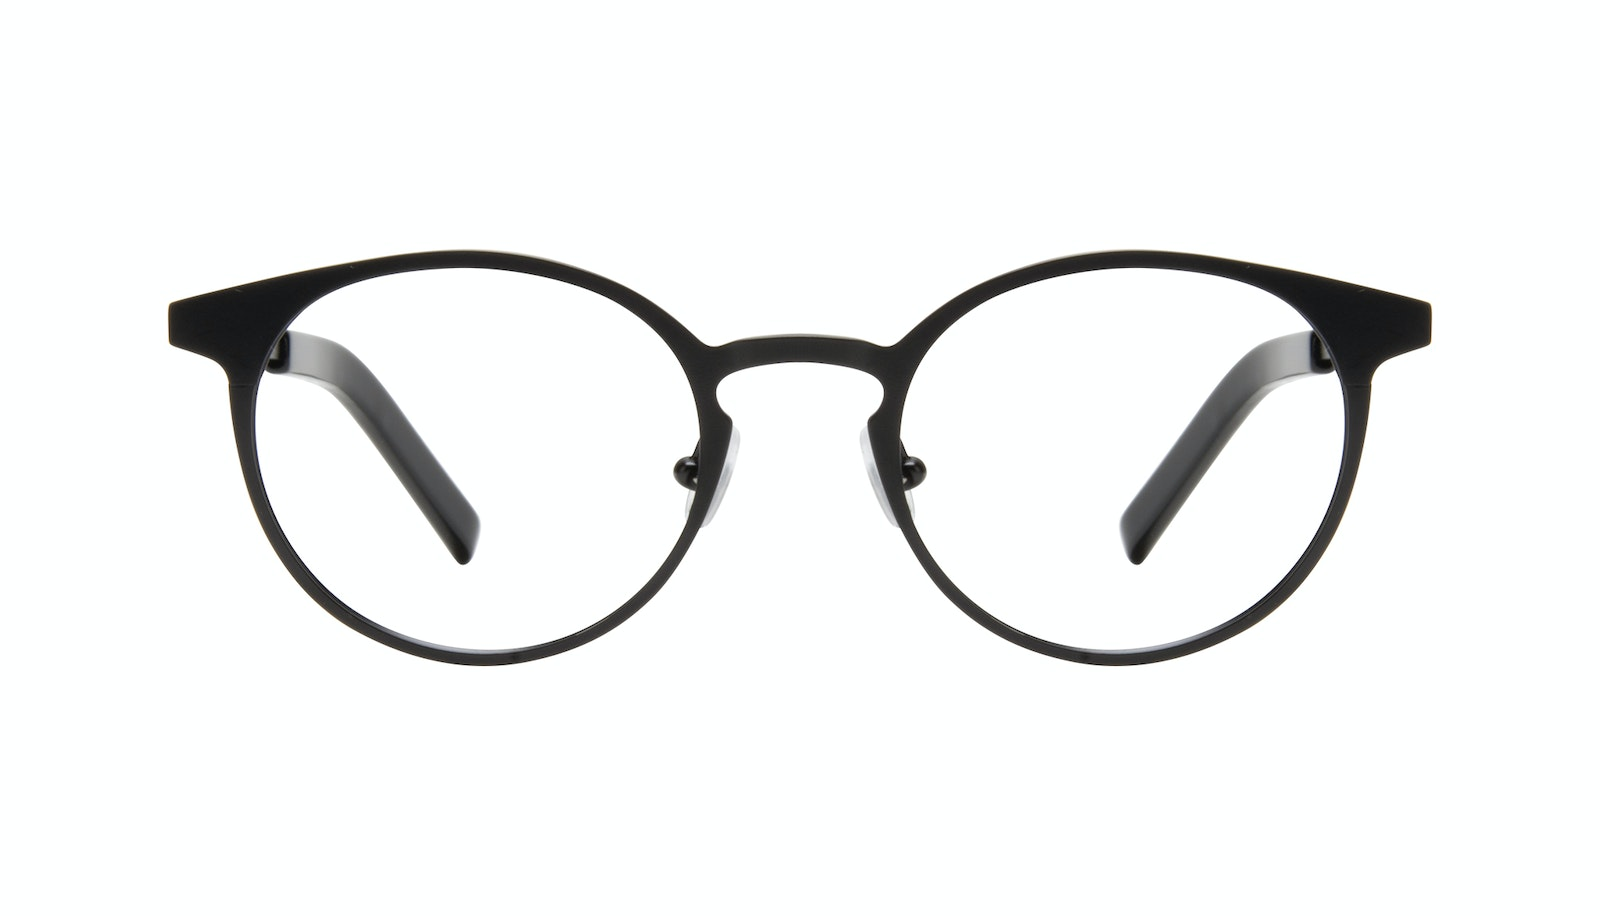 Affordable Fashion Glasses Round Eyeglasses Men Cut Onyx Matte